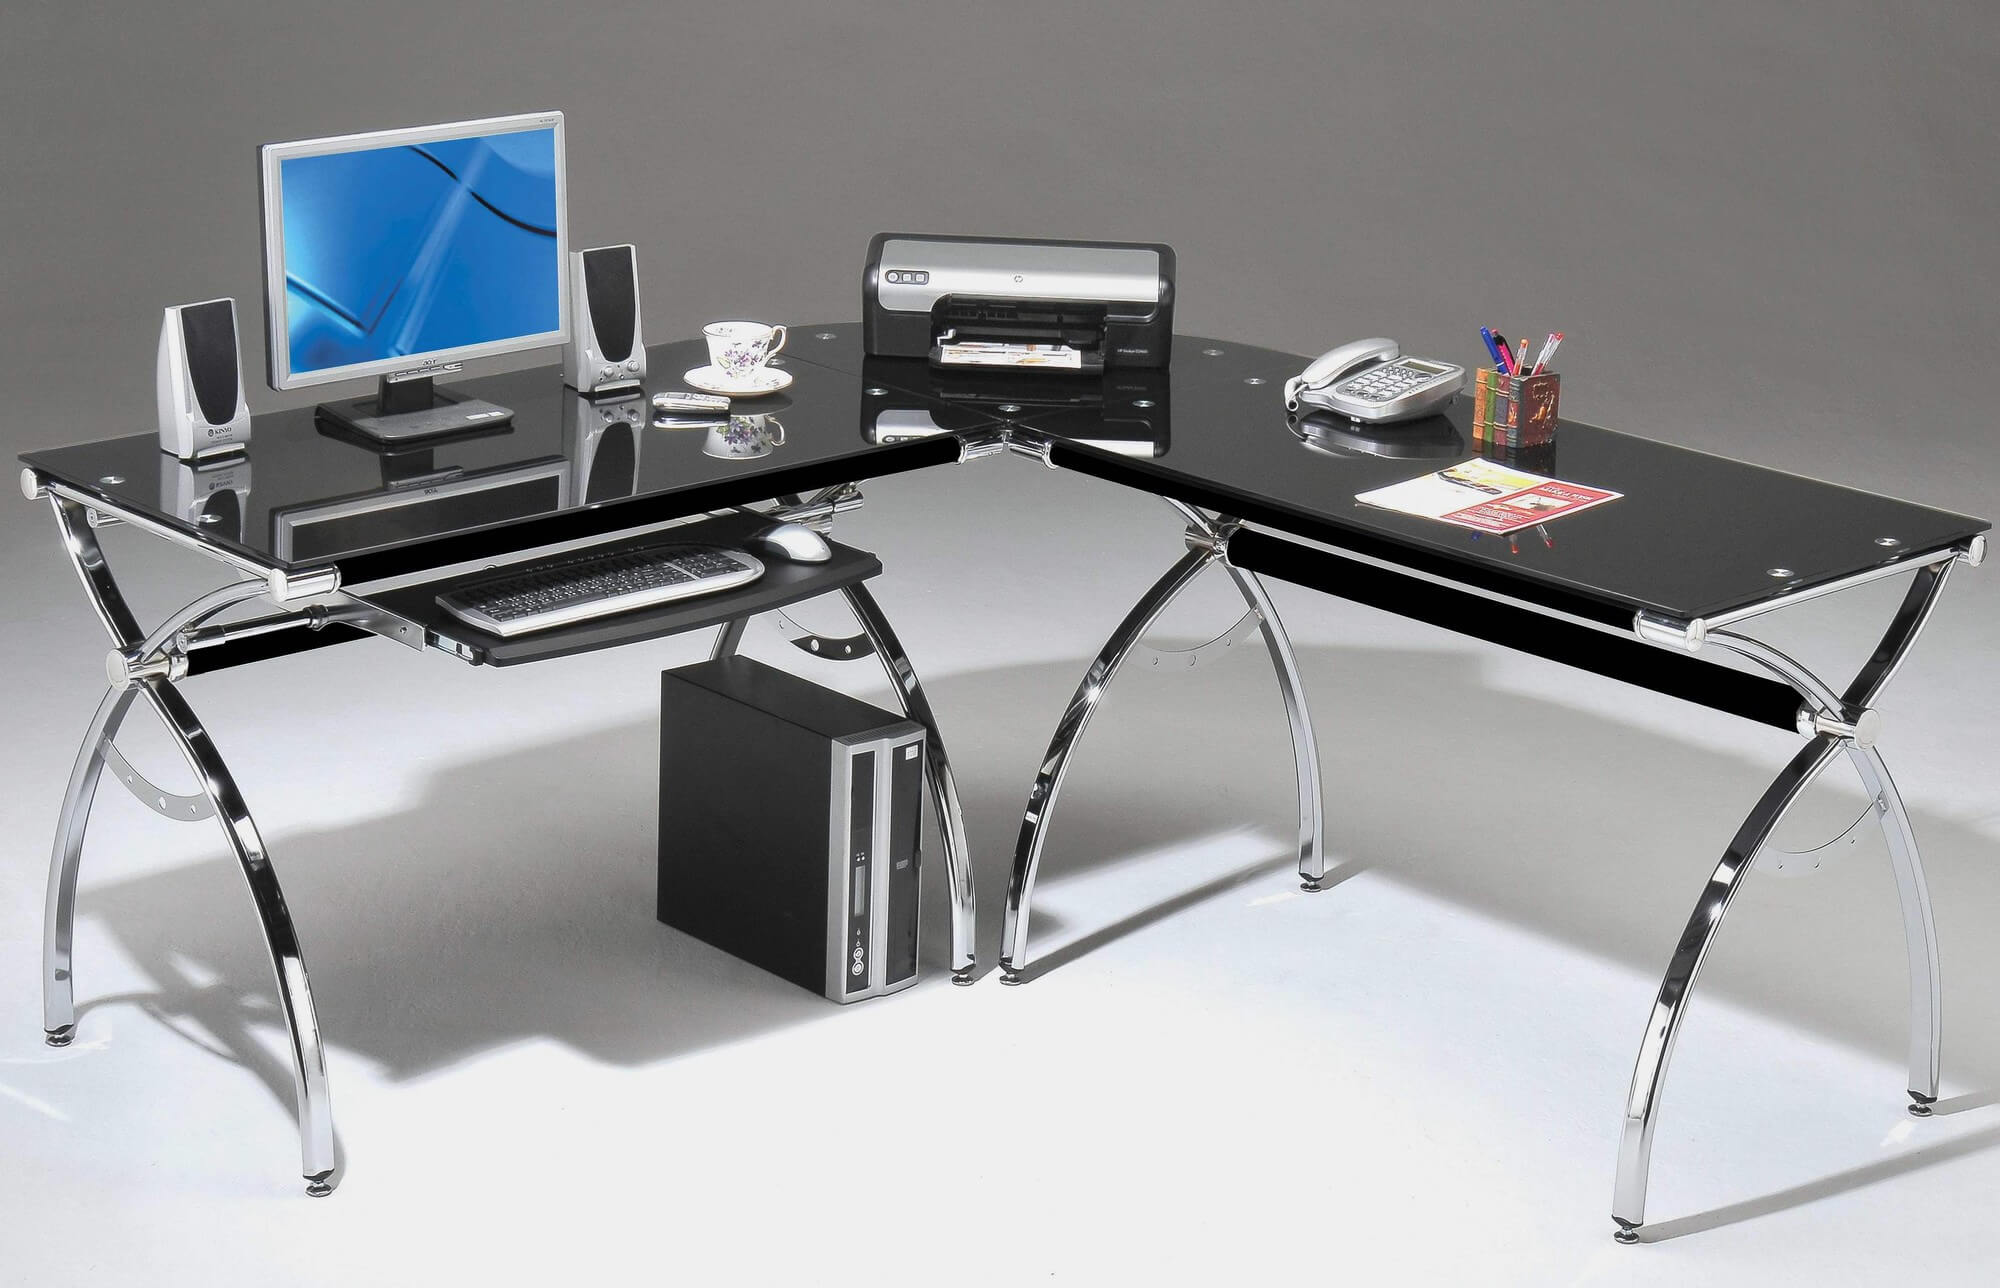 In a modern home office setting, computer desks are the most practical and utilitarian of all home office desks. These provide plenty of space for both a computer tower and monitor, as well as storage for any computer accessories, cables, and peripherals you may need. Like the writing desk, this is built for efficiency and simplicity, but with added space for hardware components.